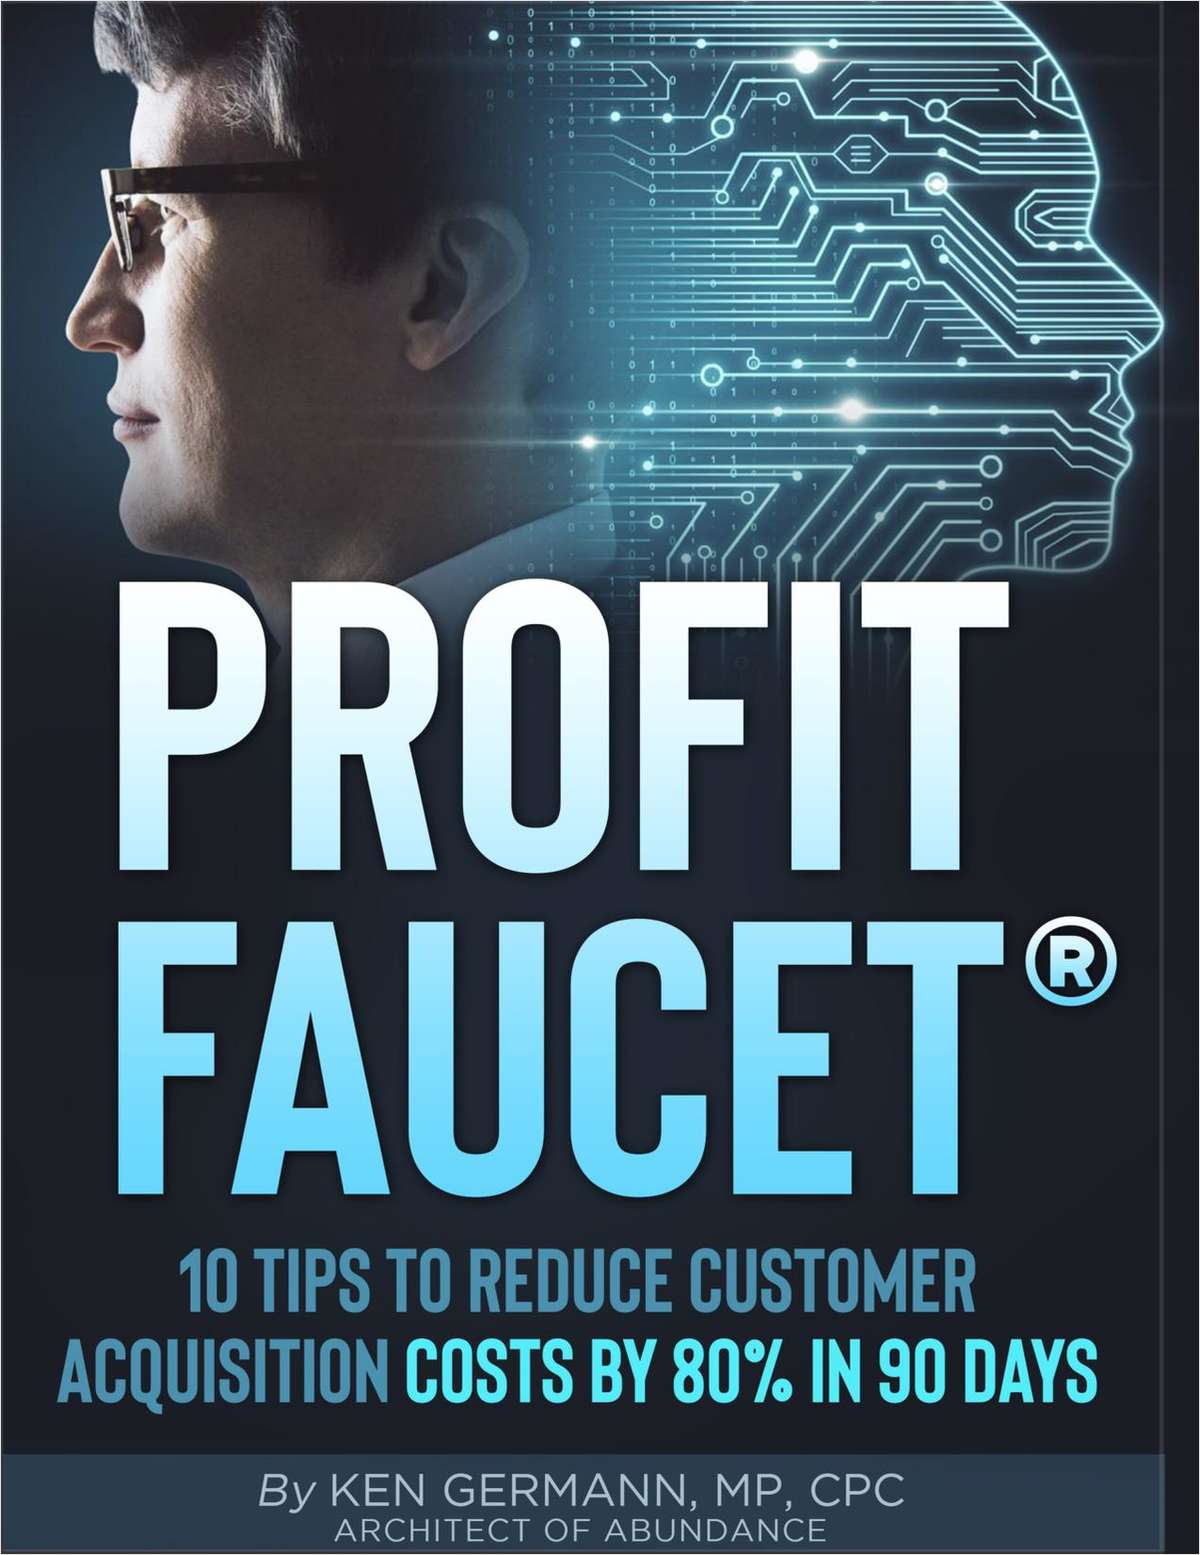 Profit Faucet: 10 Tips to Reduce Your Customer Acquisition Costs by 80% in 90 Days